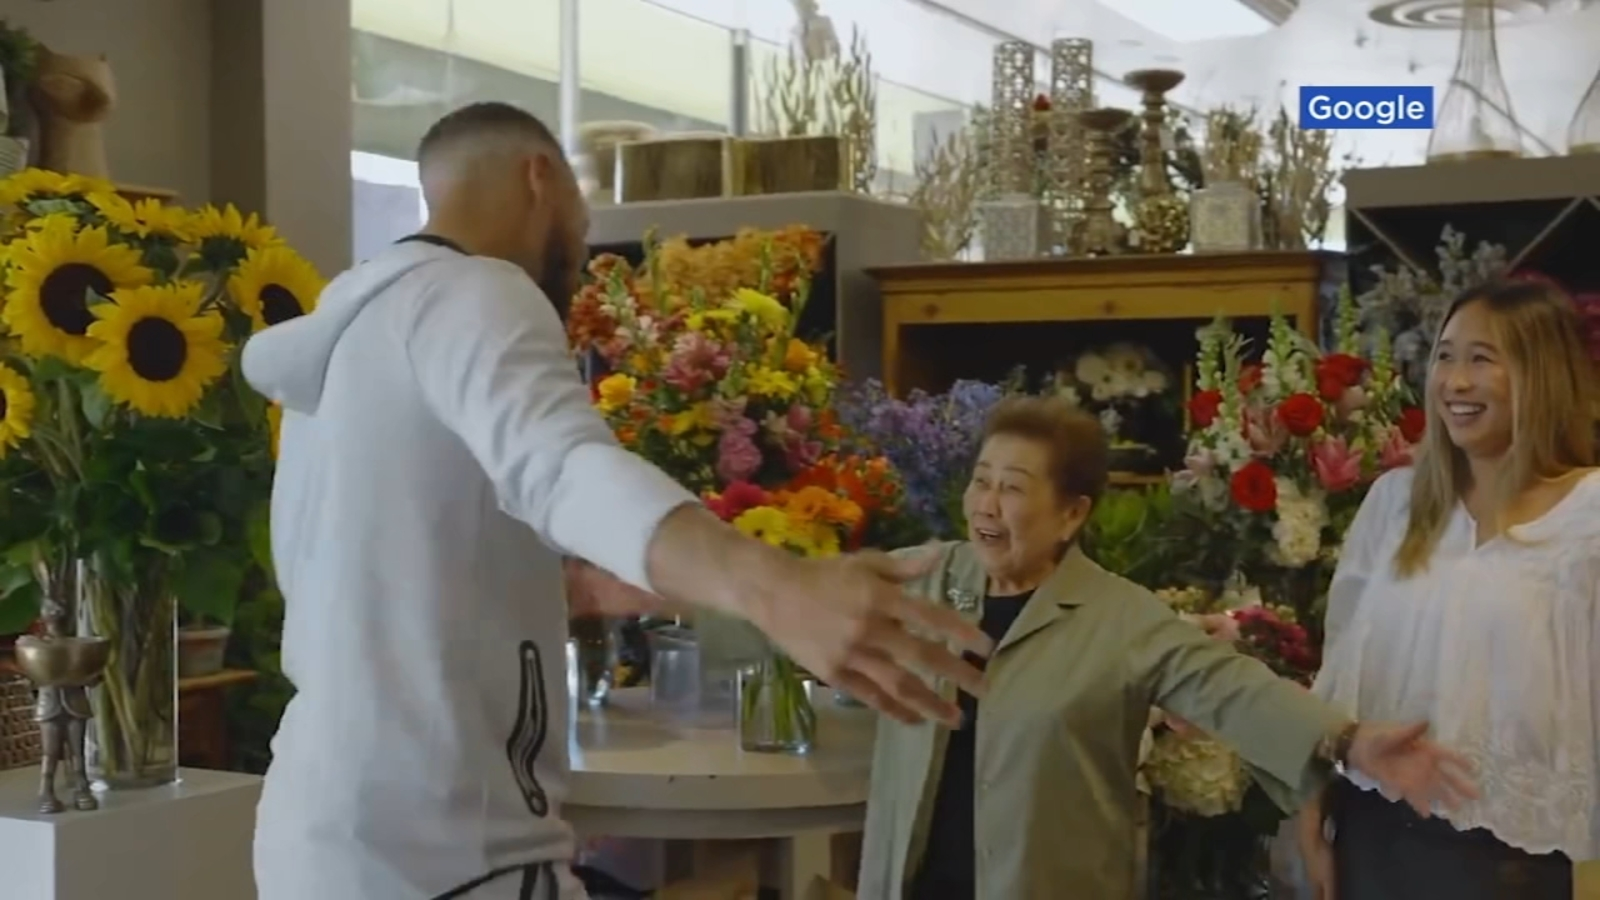 Warriors star Stephen Curry visits San Mateo 'sassy senior' florist in new video with Google - KGO-TV